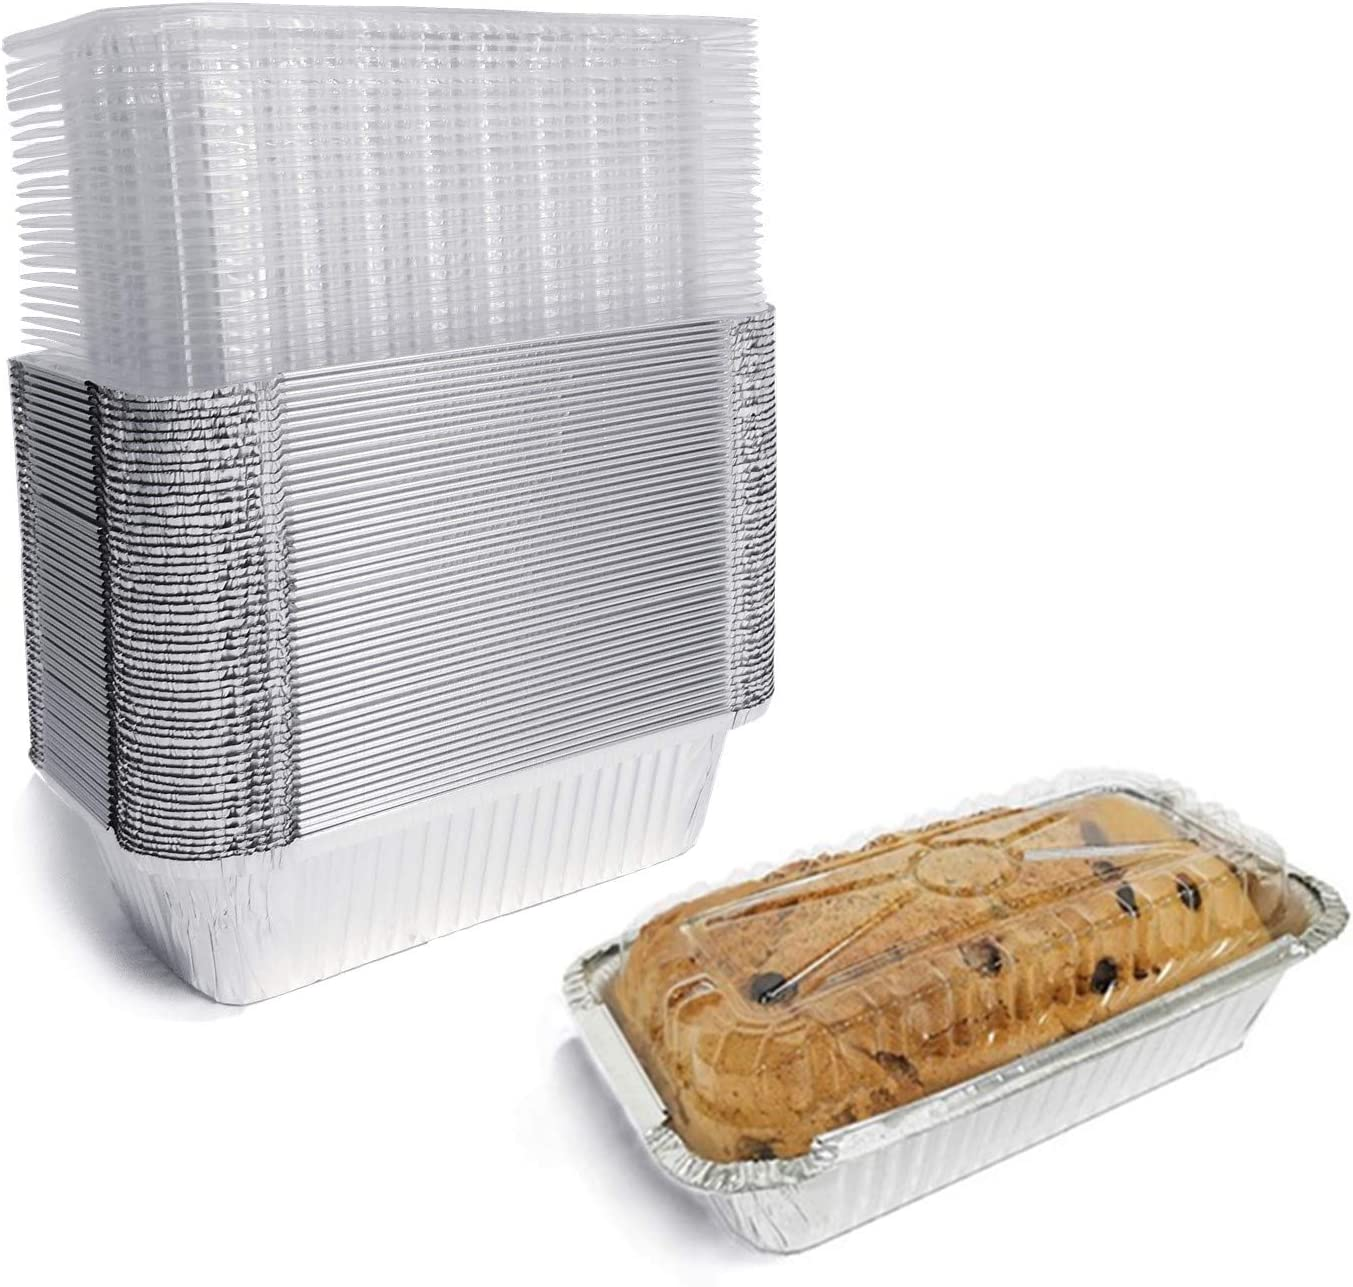 Aluminum Bread Pans Disposable | 8x4 Loaf Pans with Lids | 50 Pack | Dessert Boxes - Perfect for Baking, Storing, Takeout